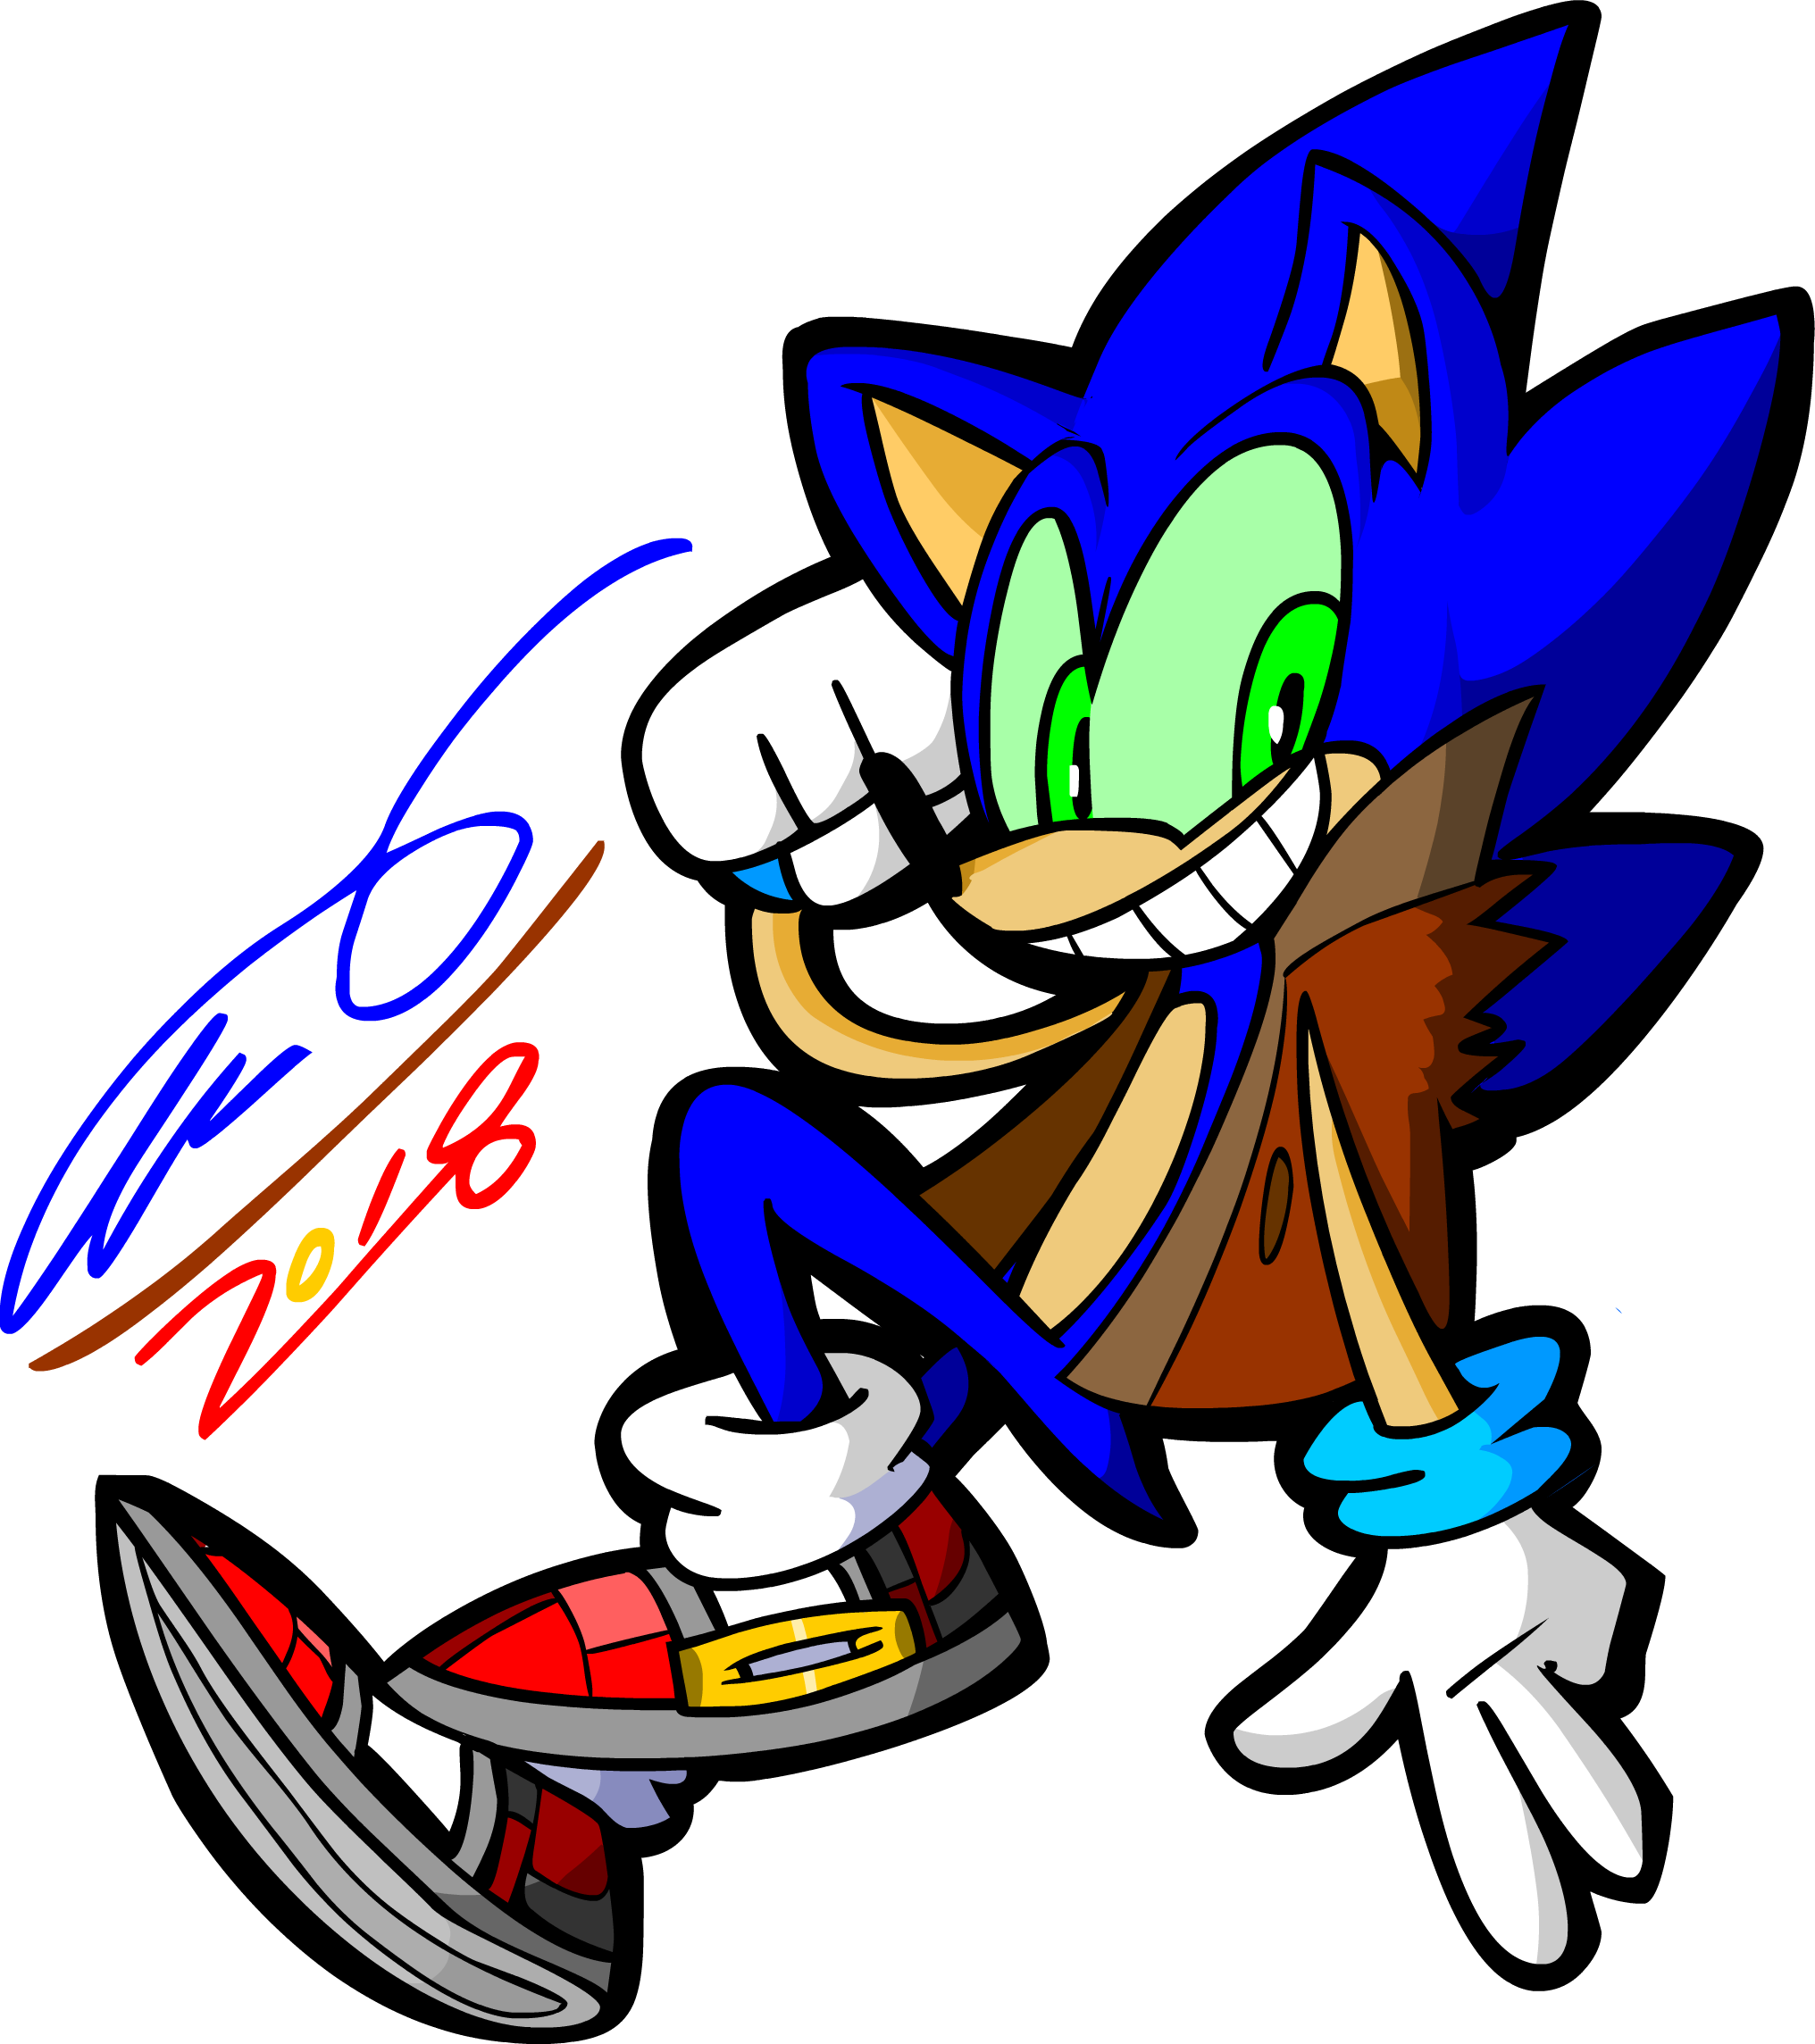 Sonic Render with signater by TanookiDX